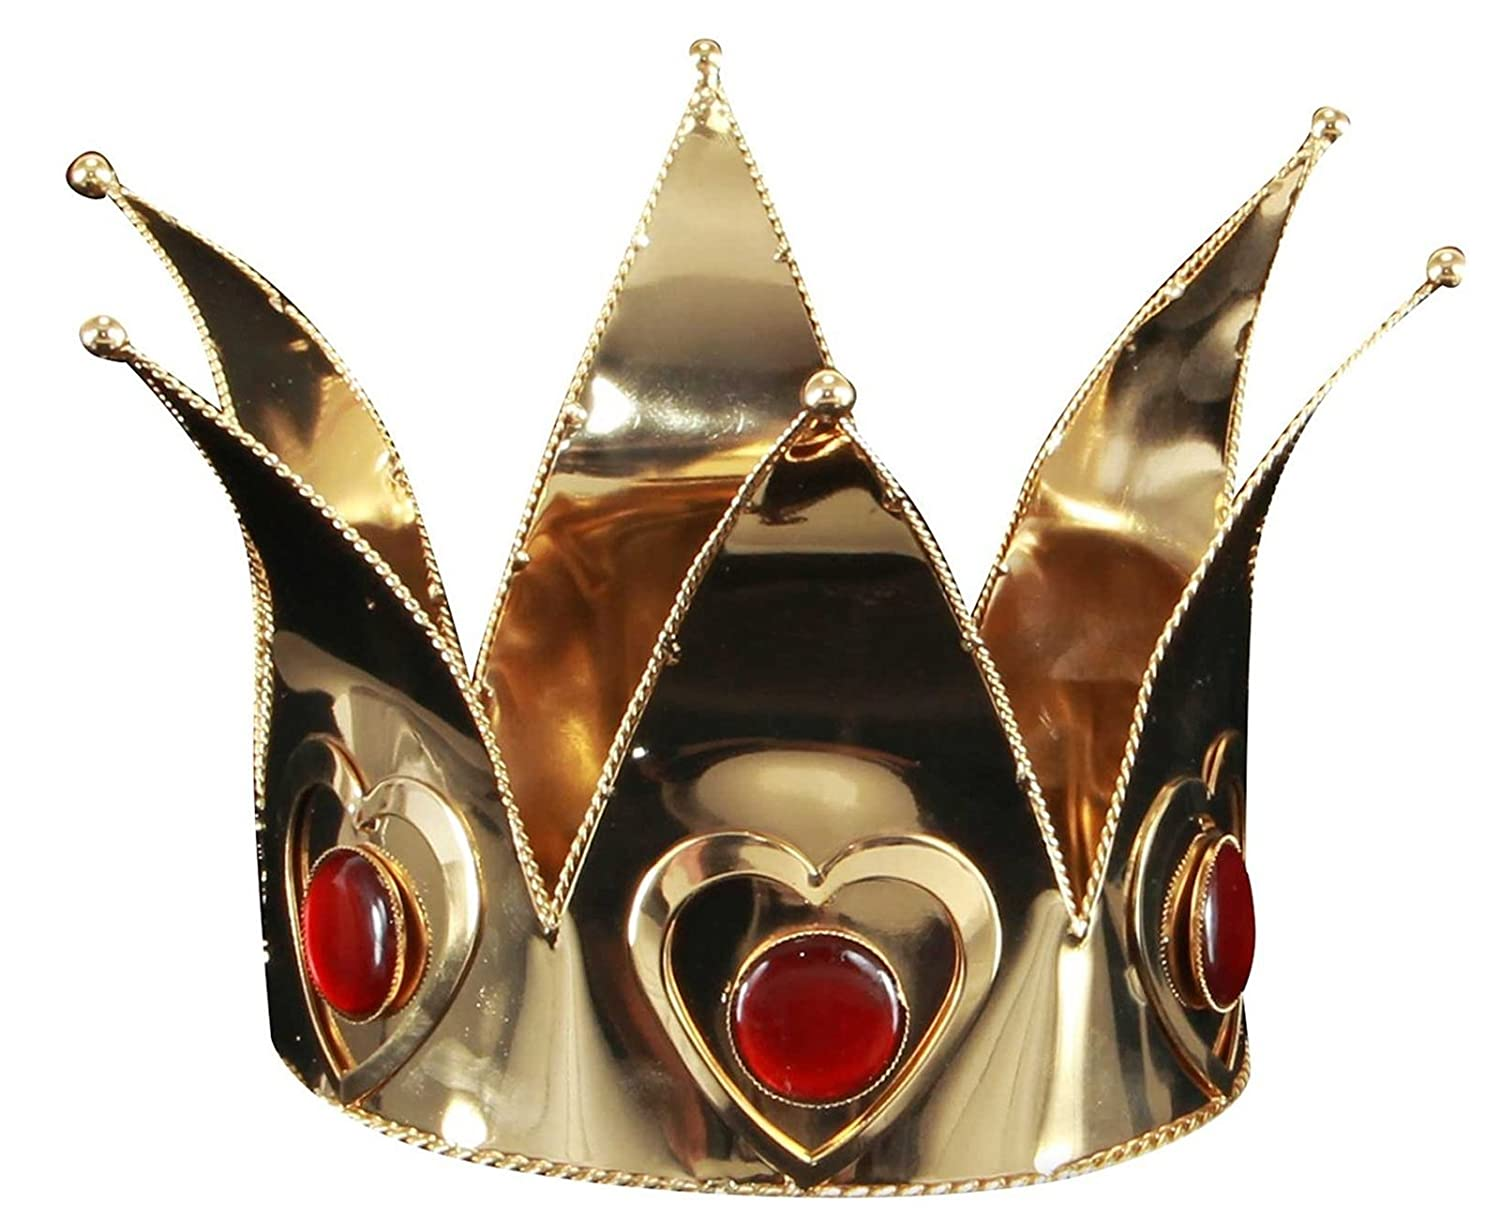 Mini Queen of Hearts Brass Acrylic Crown - DeluxeAdultCostumes.com